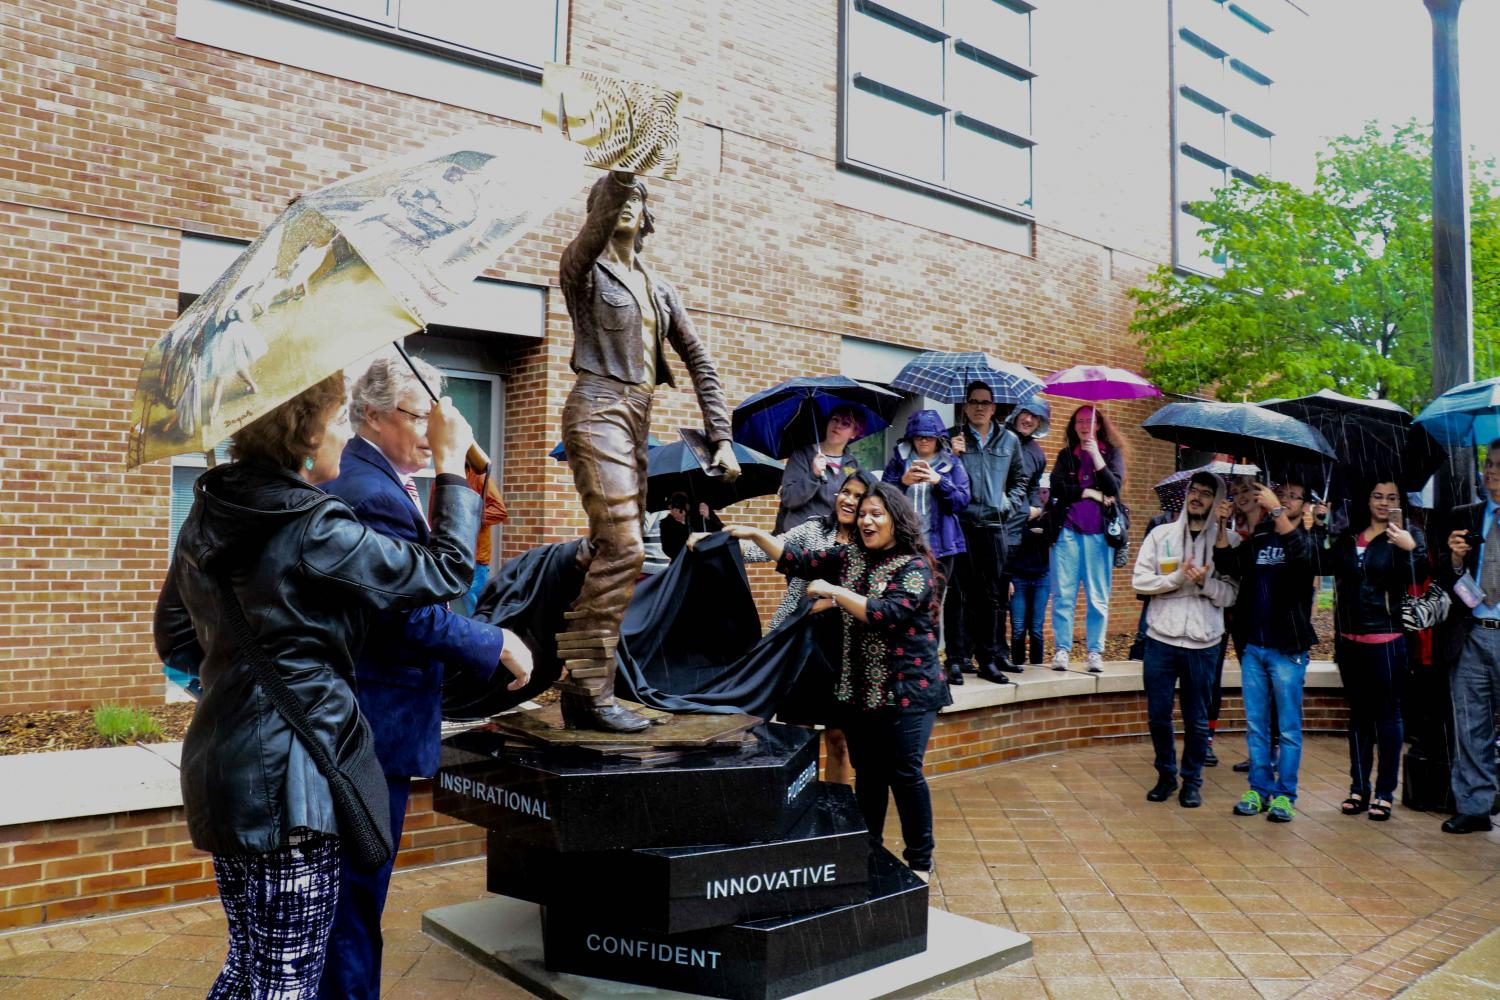 A+statue+honoring+women+in+engineering+titled+%E2%80%9CThe+Quintessential+Engineer%E2%80%9D+is+unveiled+on+the+Engineering+Quad+on+Friday.+Columnist+Saketh+Vasamsetti+thinks+students+should+pay+more+attention+to+campus+donations+from+other+classes+and+faculty+members.